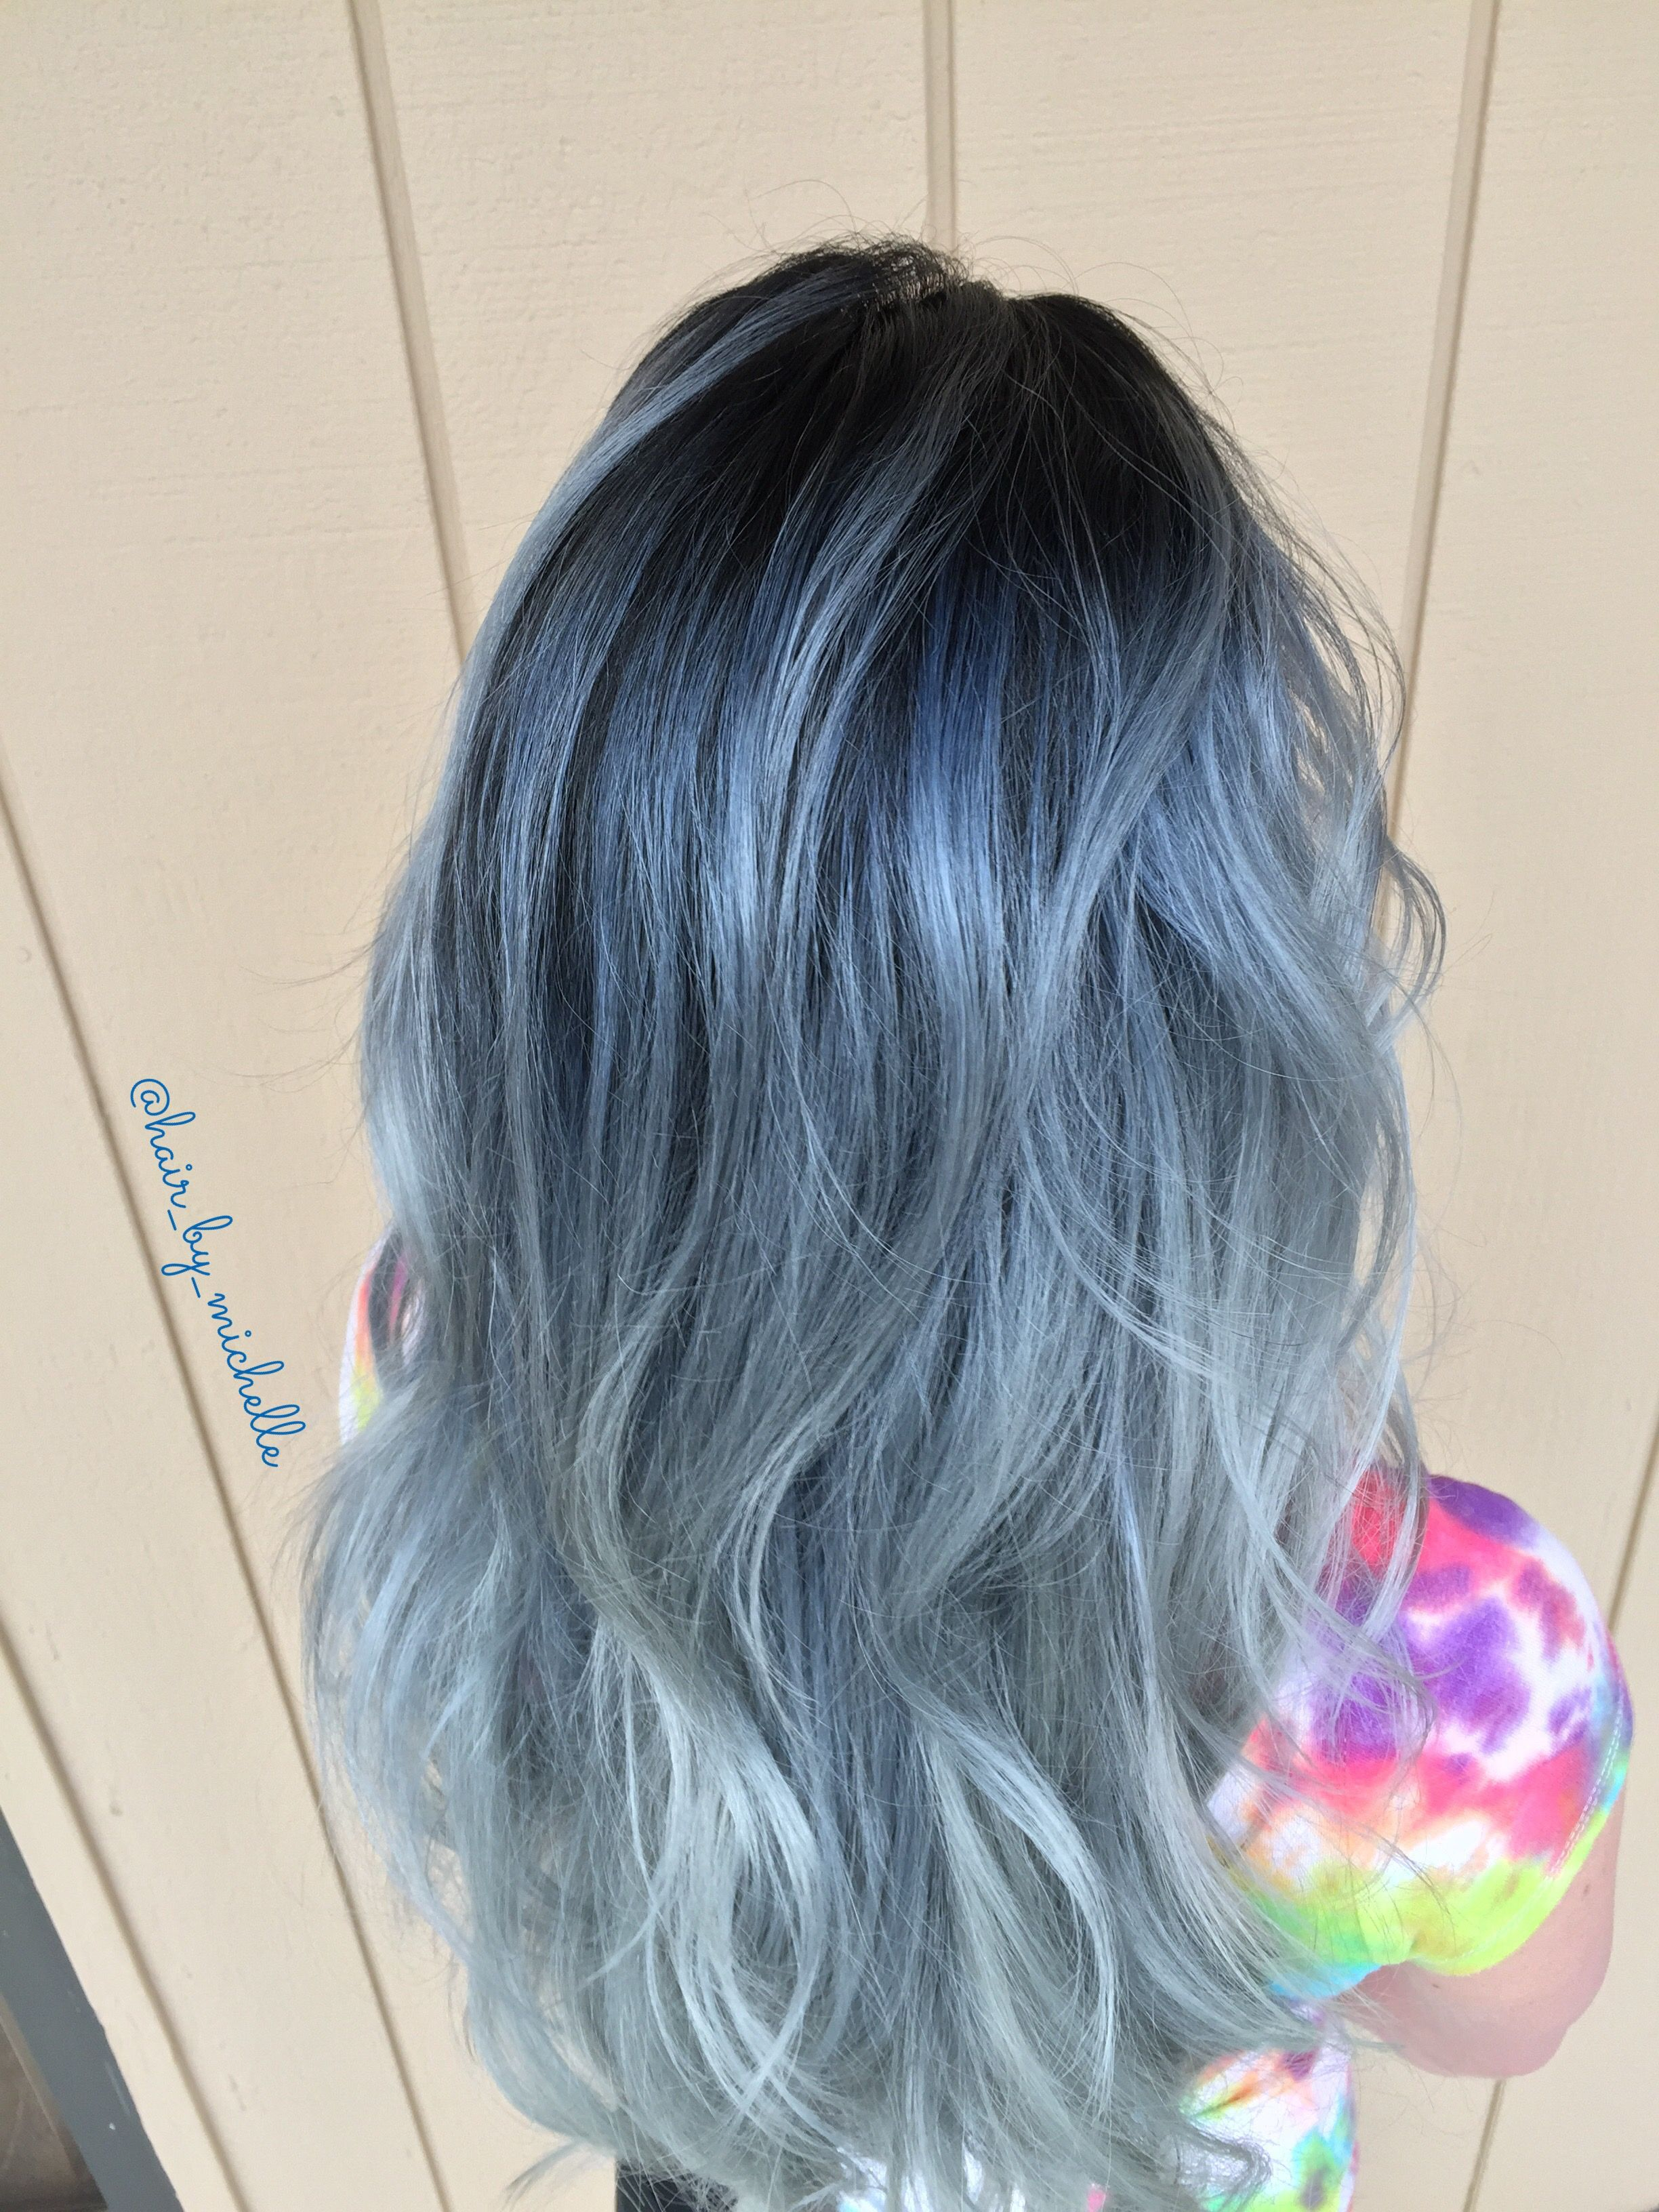 Colores De Pintura Para Cabello Denim Hair Blue And Silver Balayage Hair Cabello Tinte